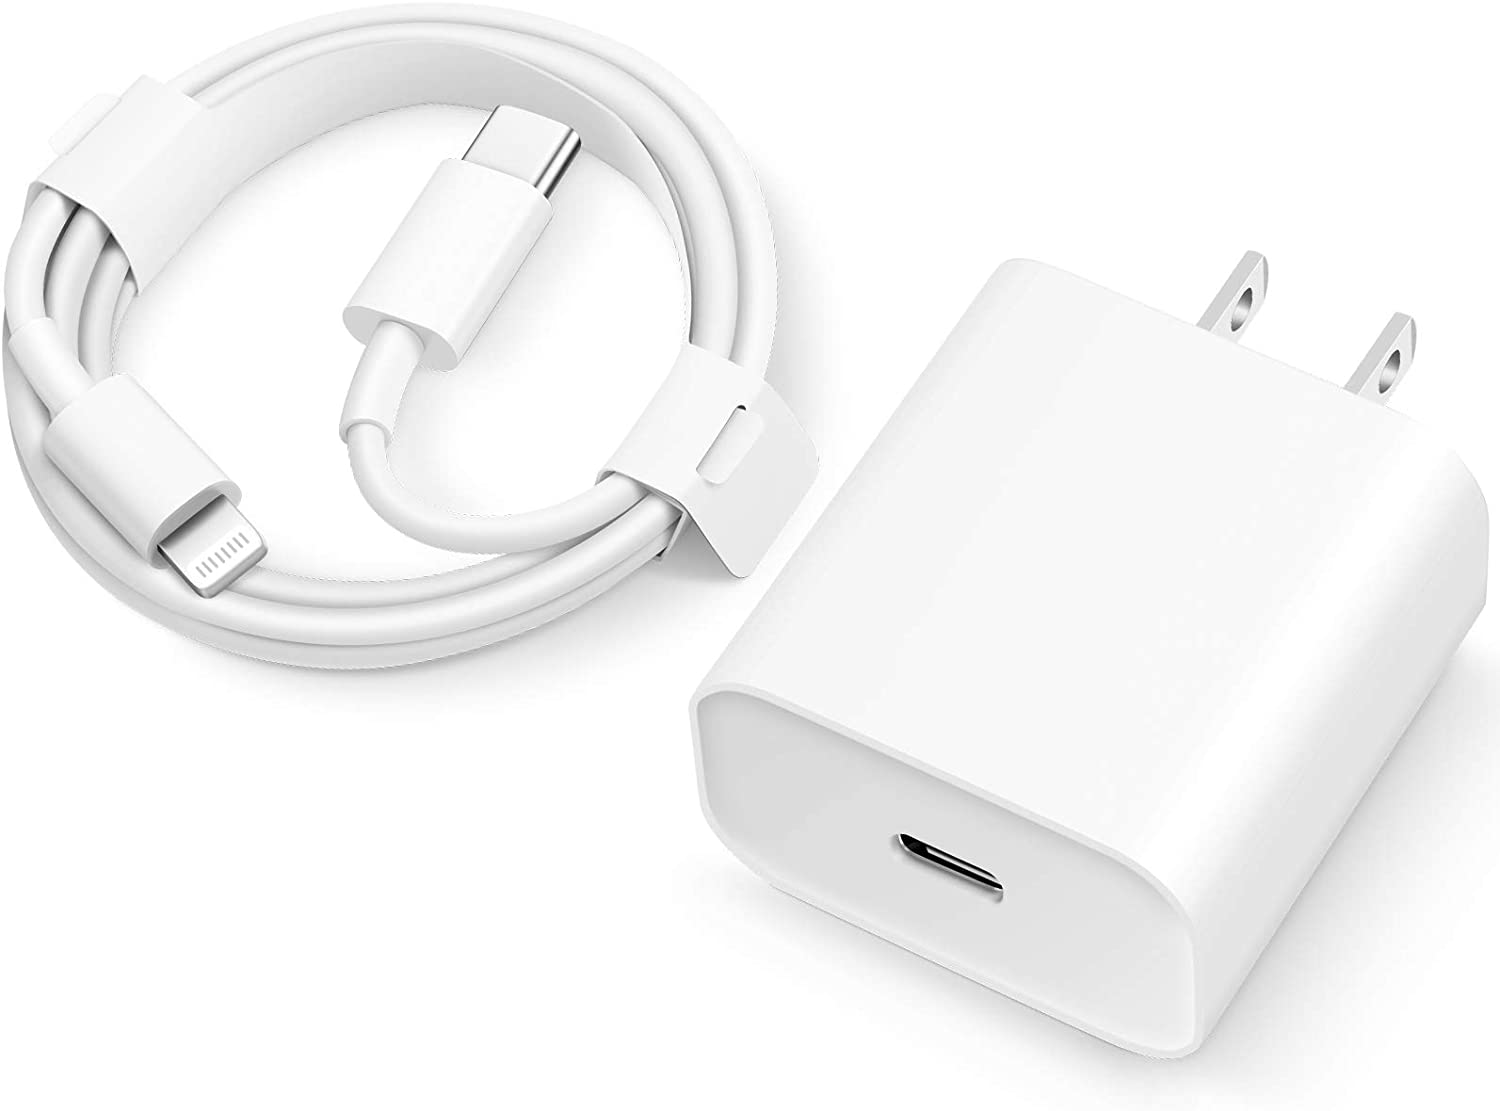 USB C PD Fast Charger for iPhone 12 [MFi Certified] 20W Wall Charger with 6FT USB C to Lightning Cable Compatible with iPhone 12/12 Mini/12 Pro/12 Pro Max/11/11 Pro Max/Xs Max/XR/X